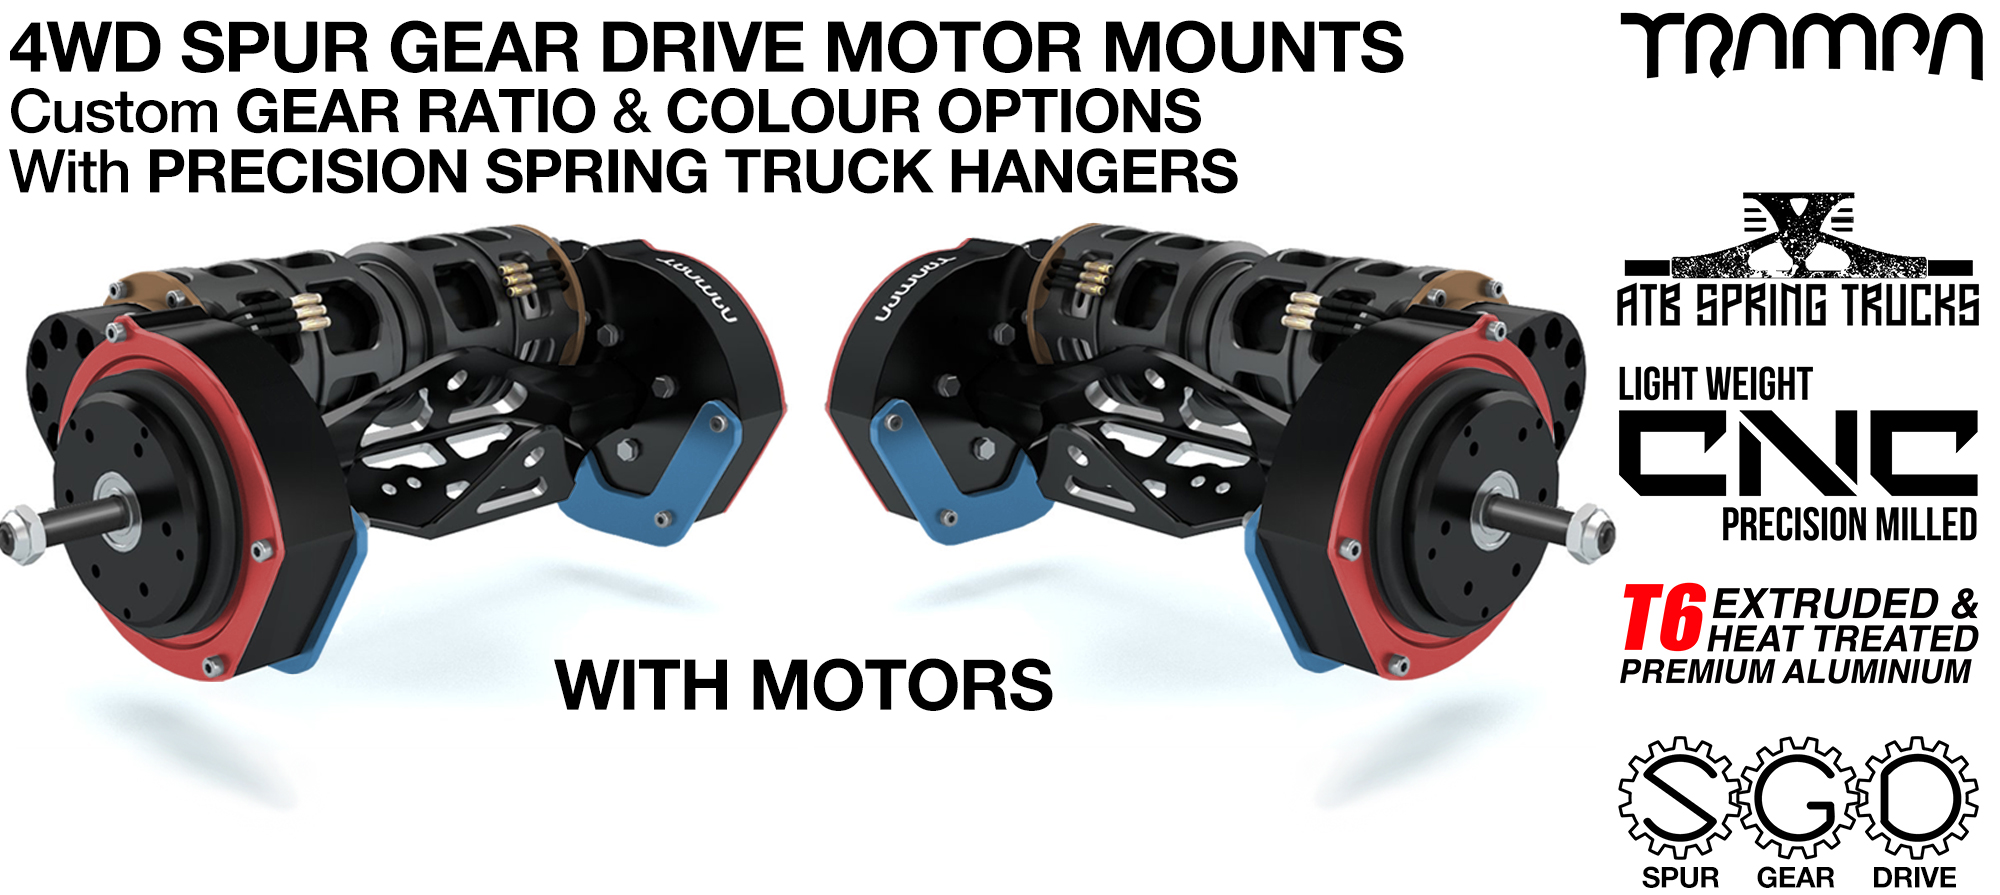 4WD Mountainboard Spur Gear Drive Motor Mounts on Hangers with Custom Motors